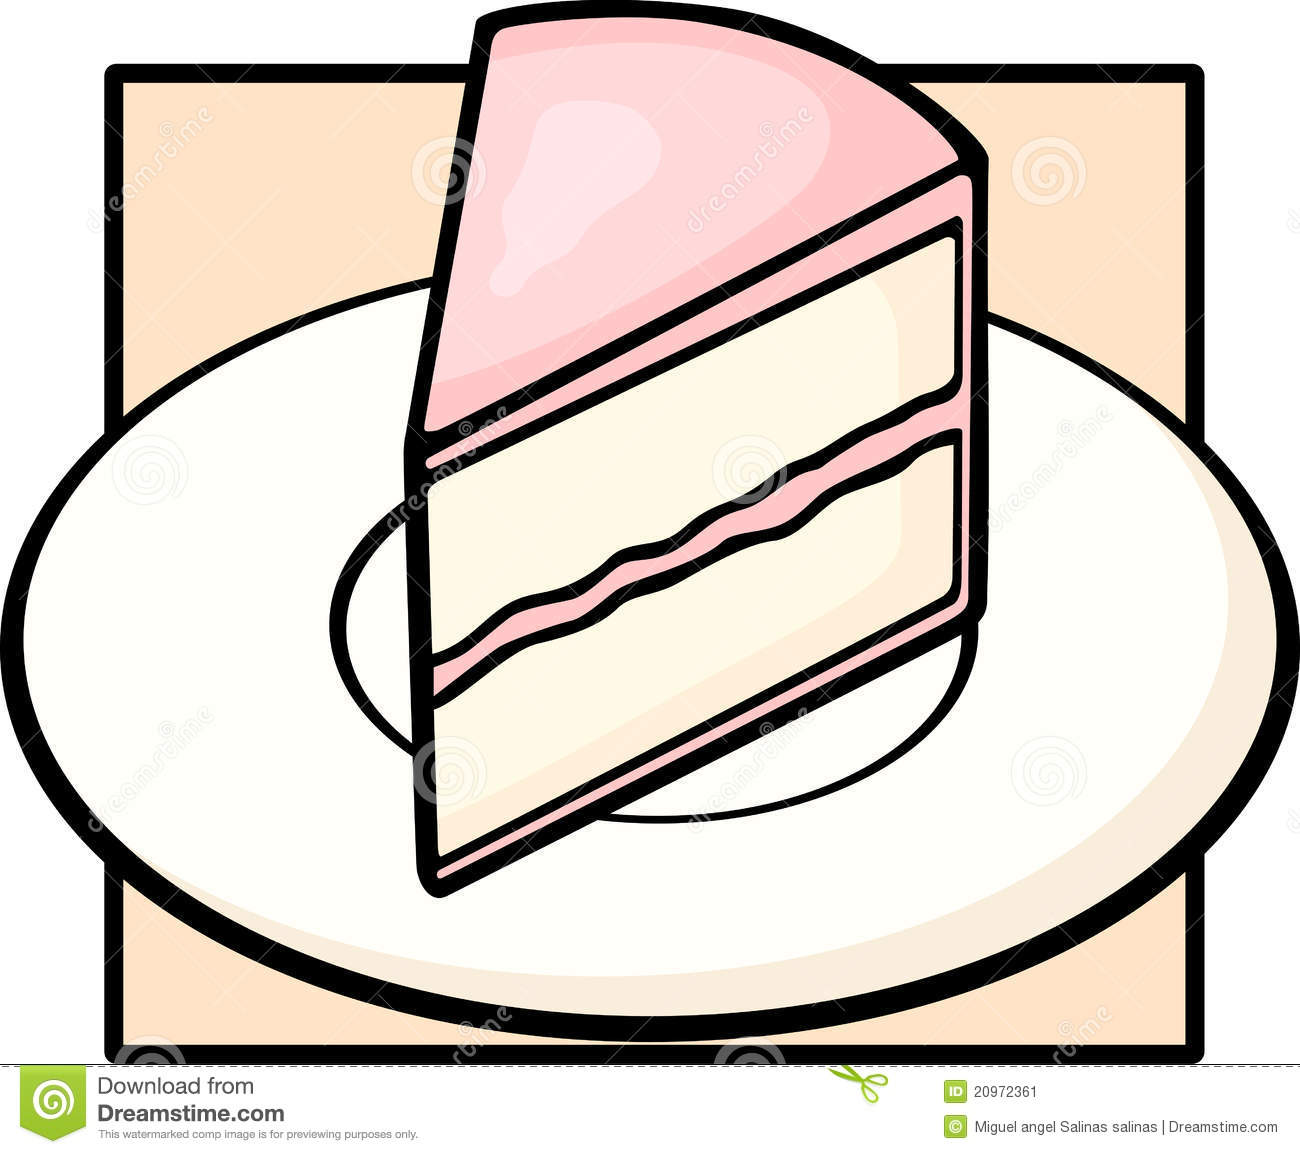 Cake Slice In Dish Ilration Of A Stock Image